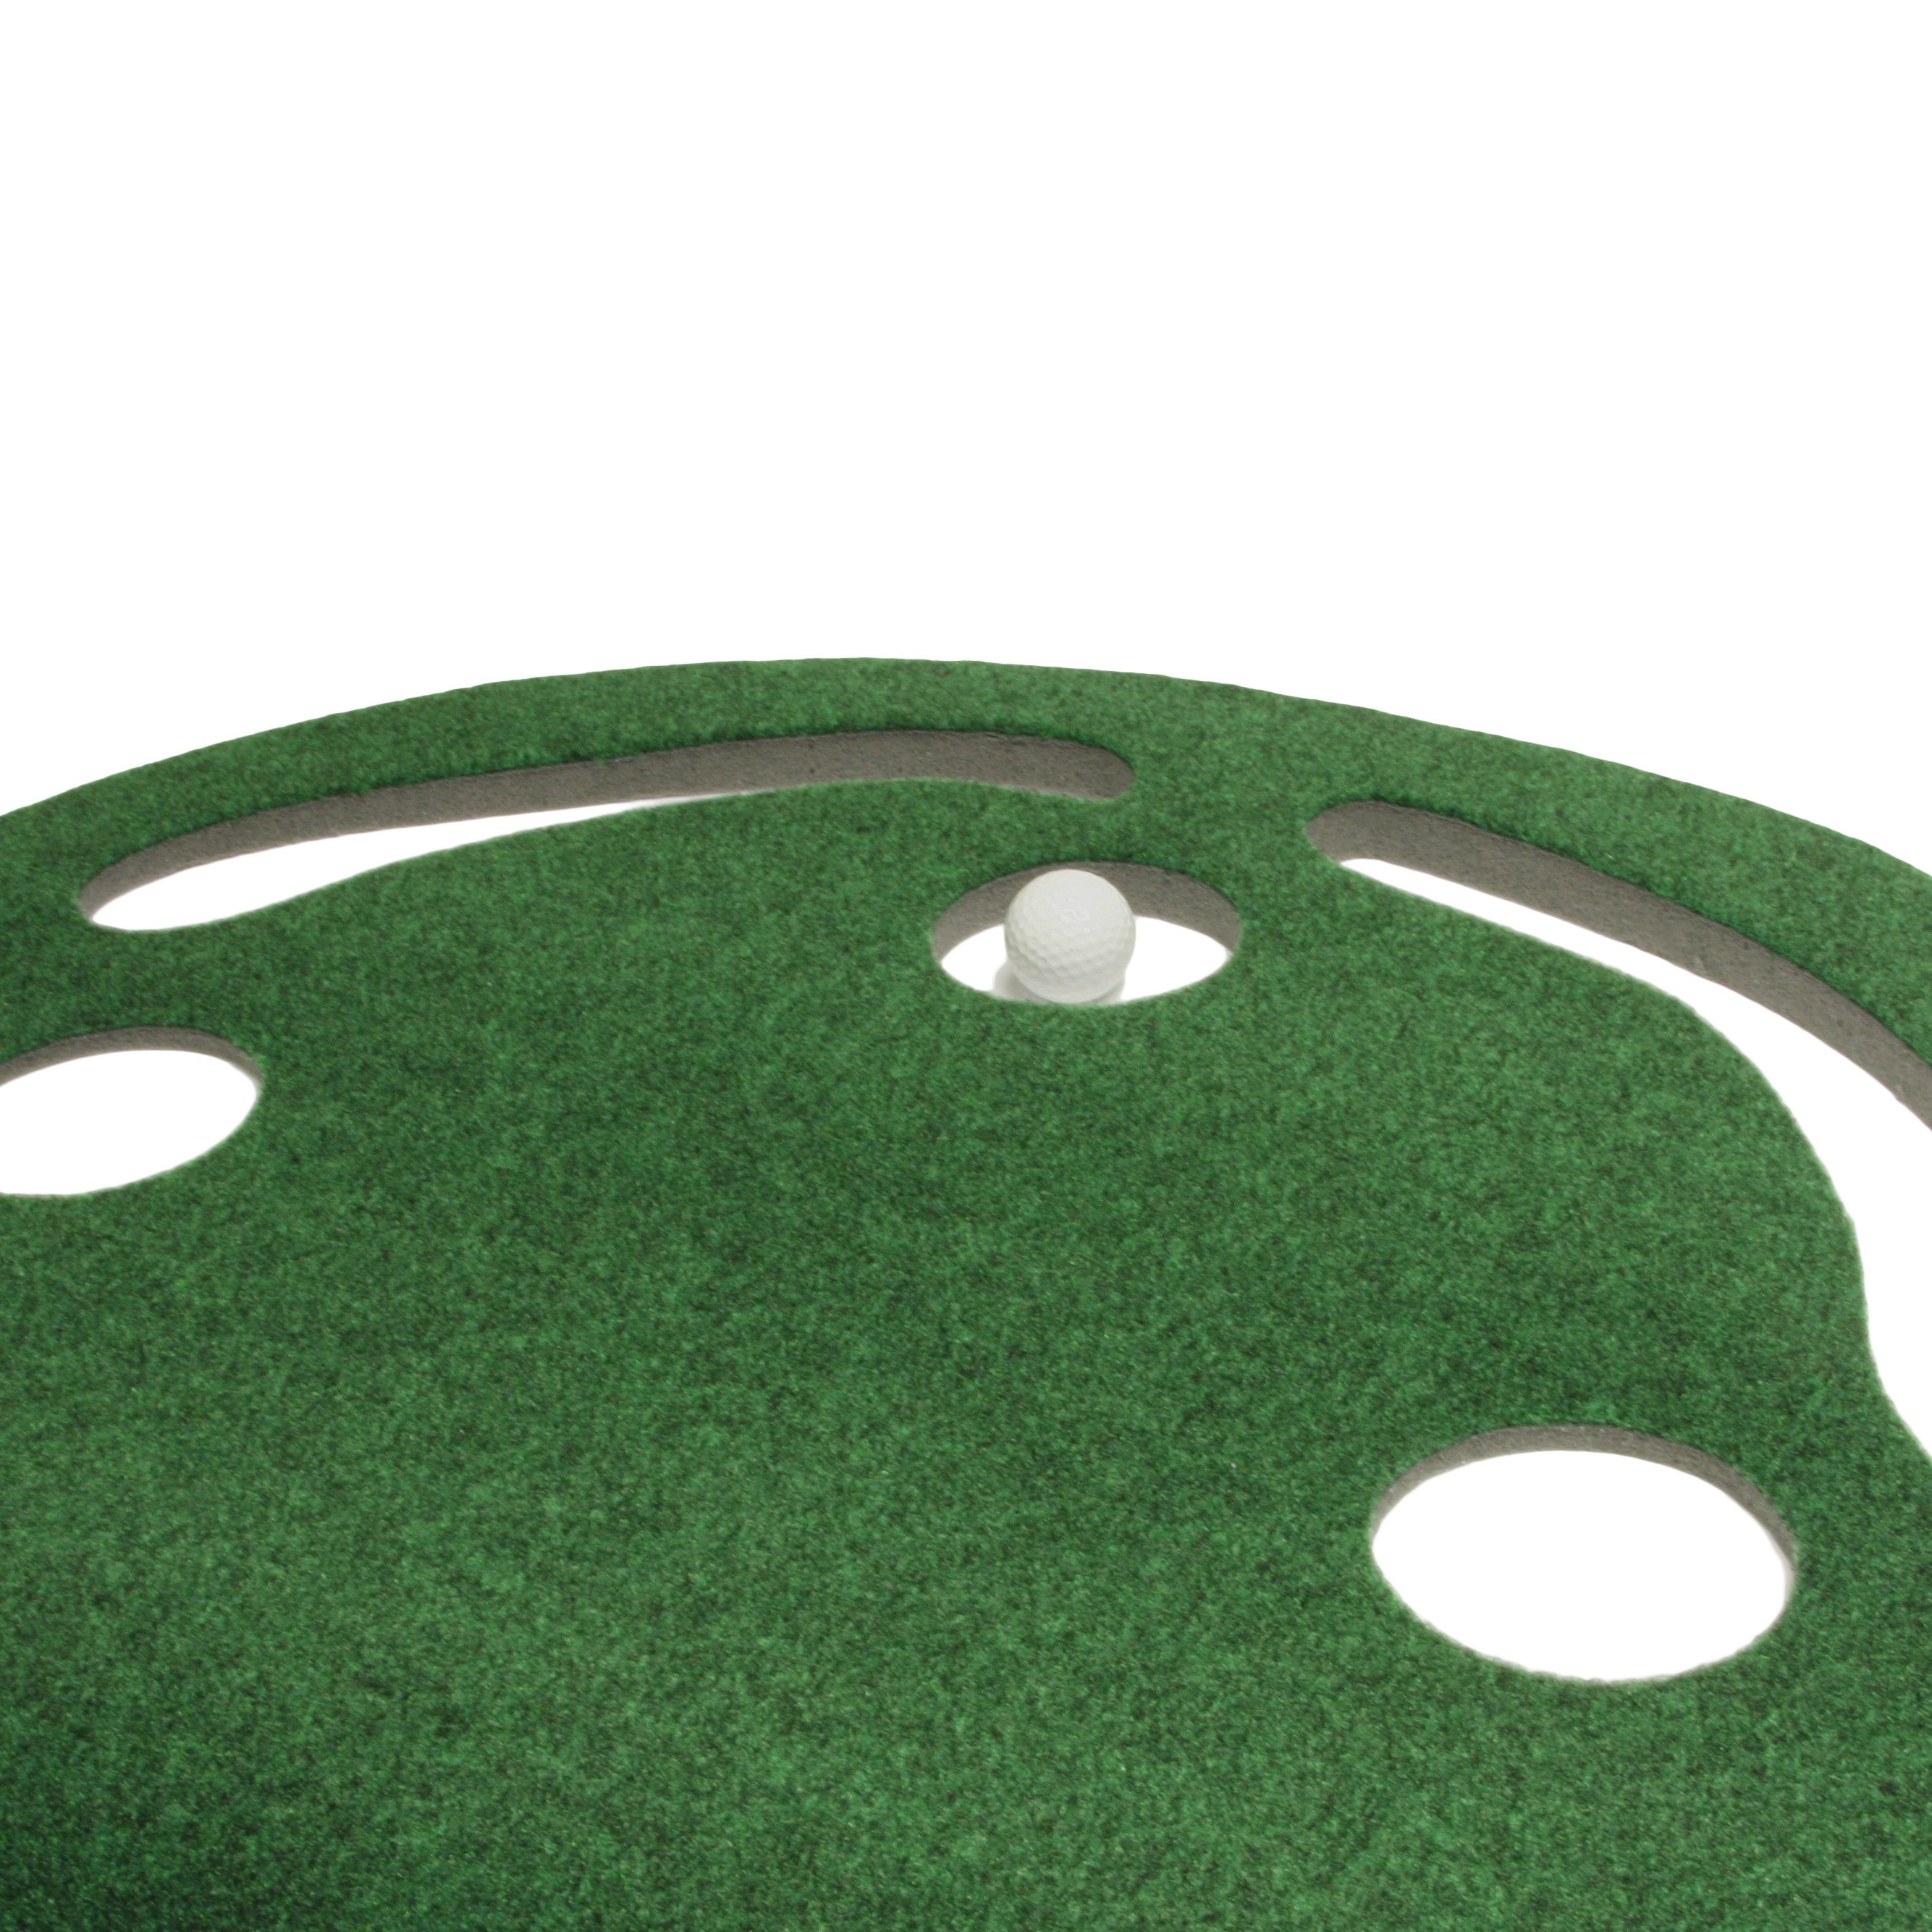 putting golf puttout best product new balls dad lake gift him christmas green mat for mats